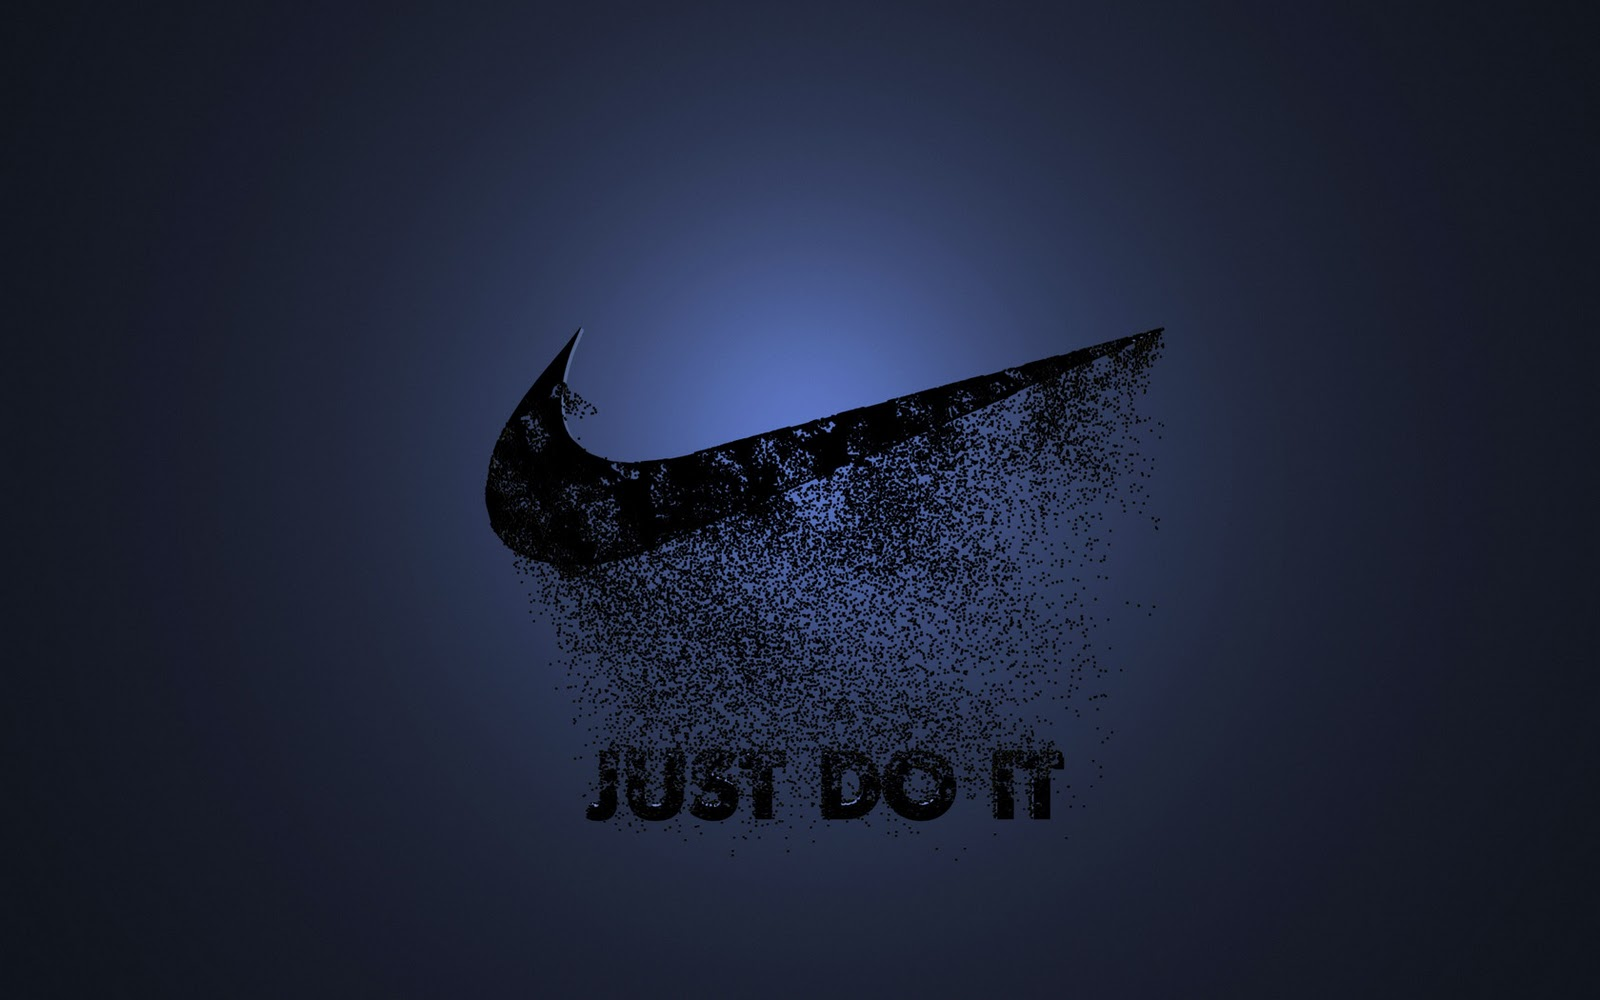 Hd wallpaper nike - Nike Wallpaper Just Do It Hd Wallpaper Background